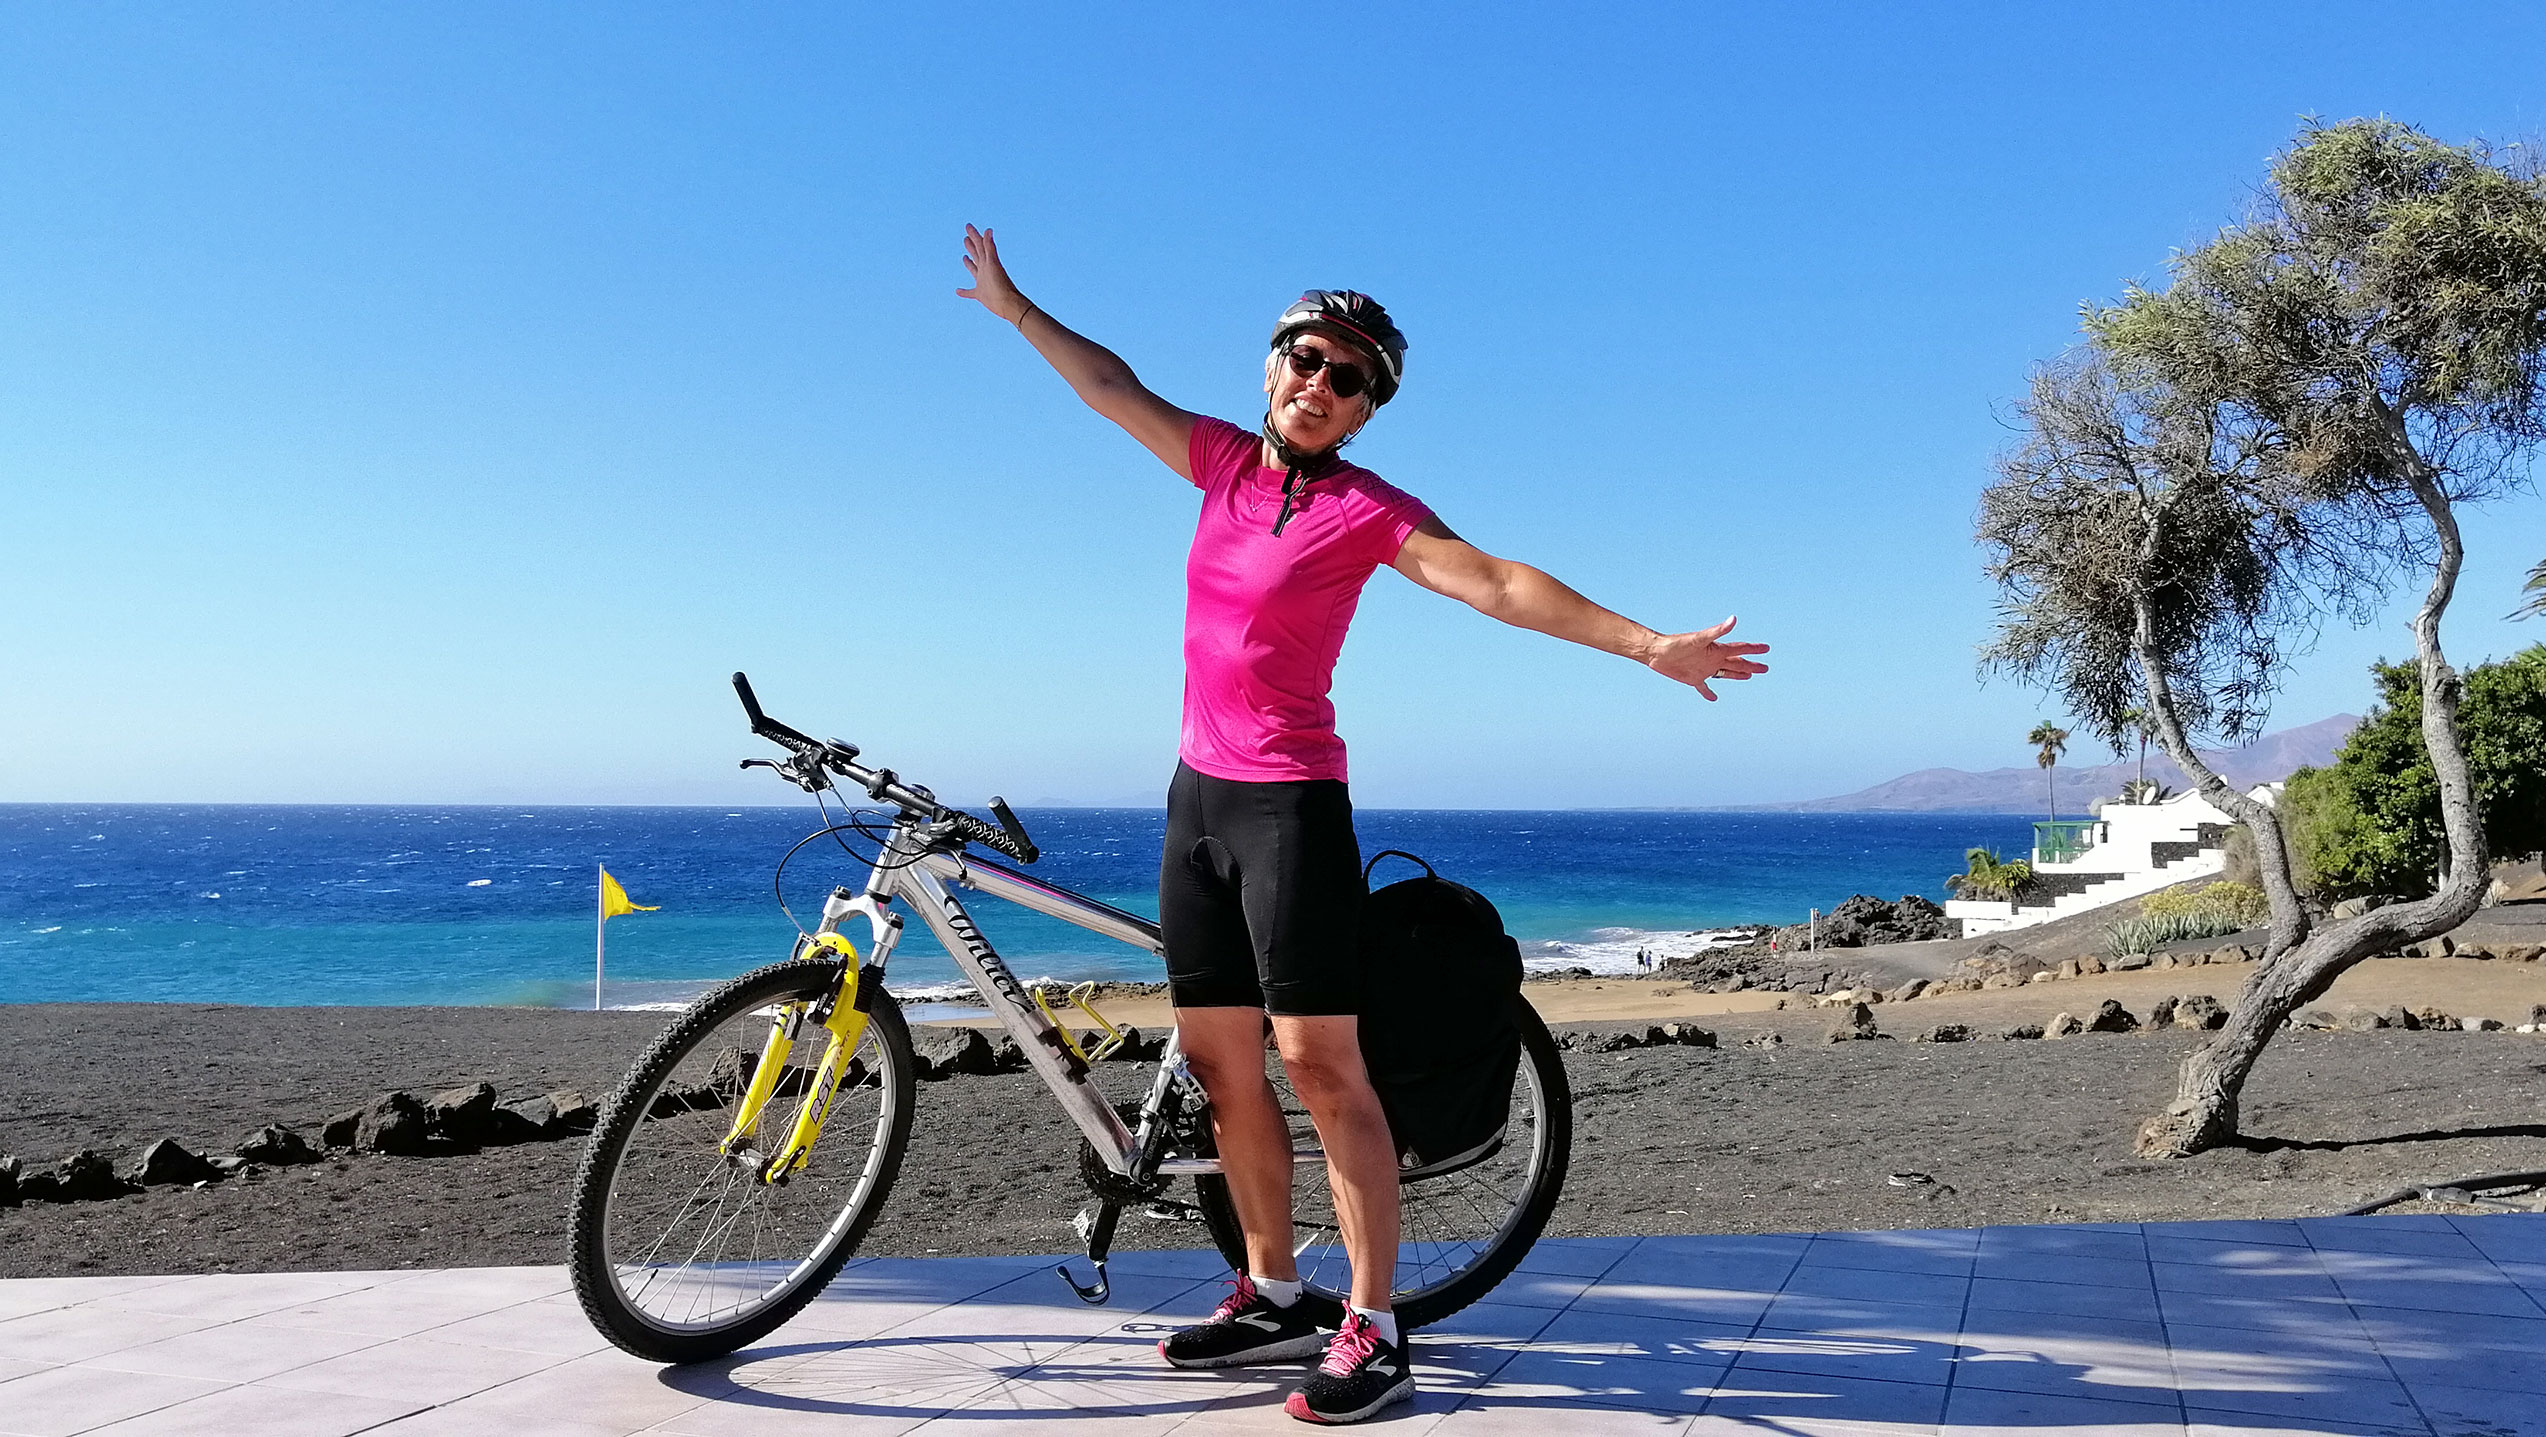 Amelia in mountain bike sul lungomare di Arrecife